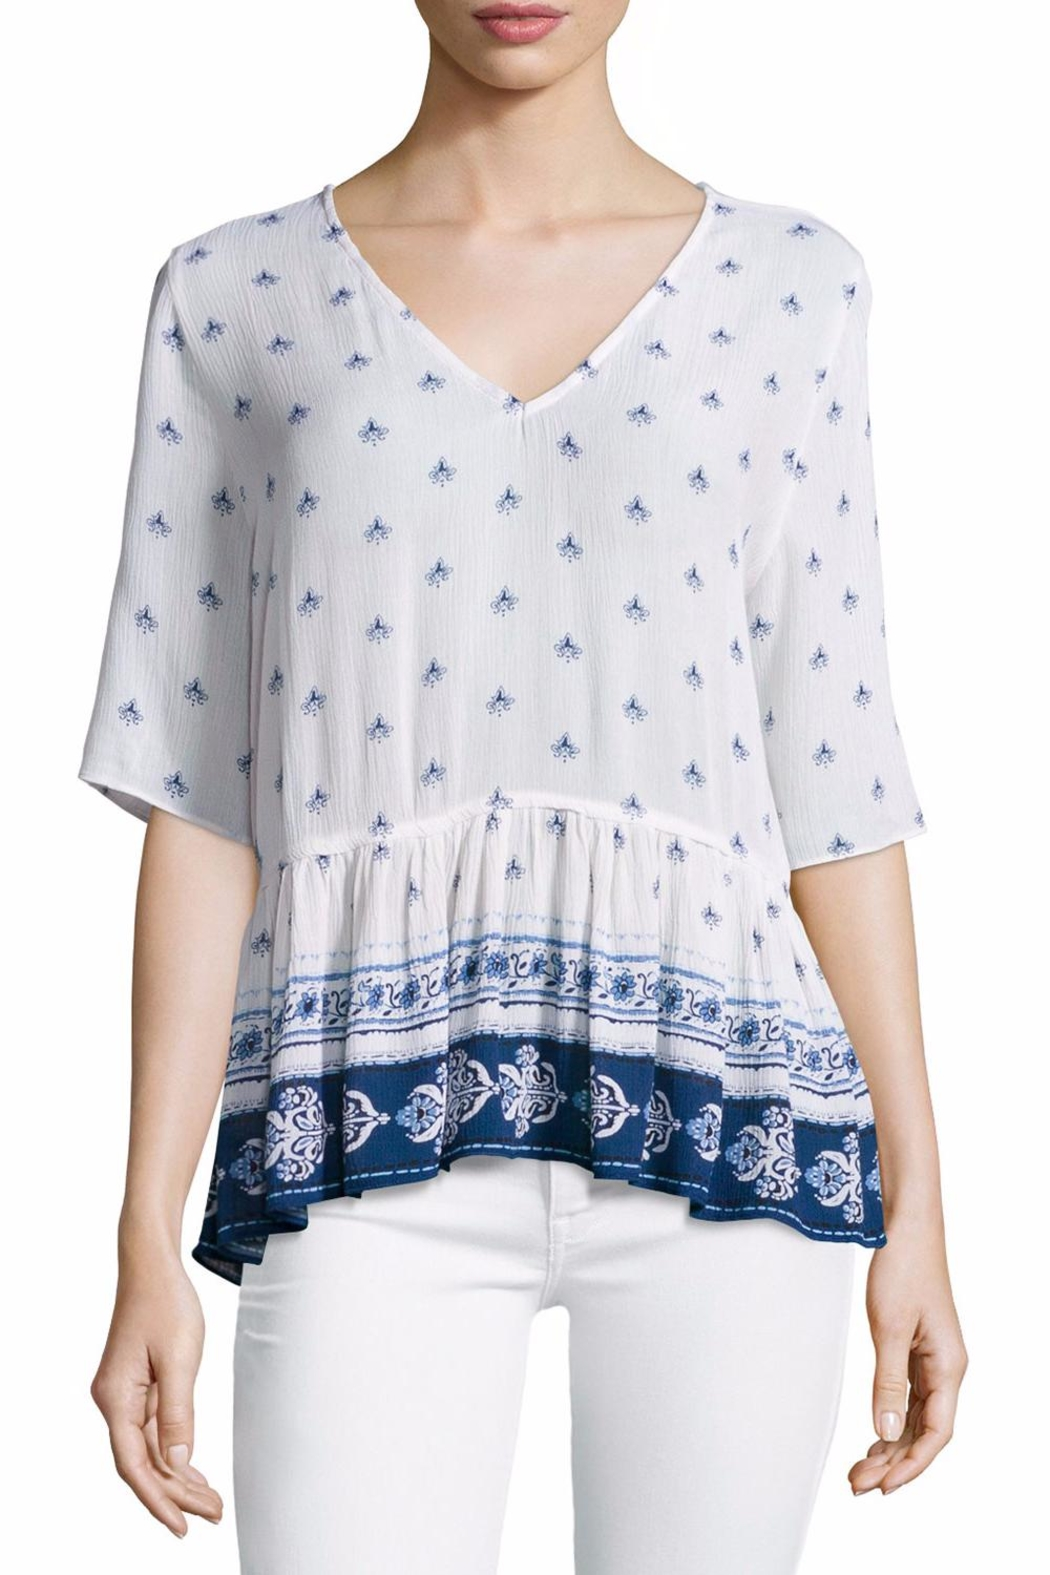 On The Road Printed Peplum Top - Main Image